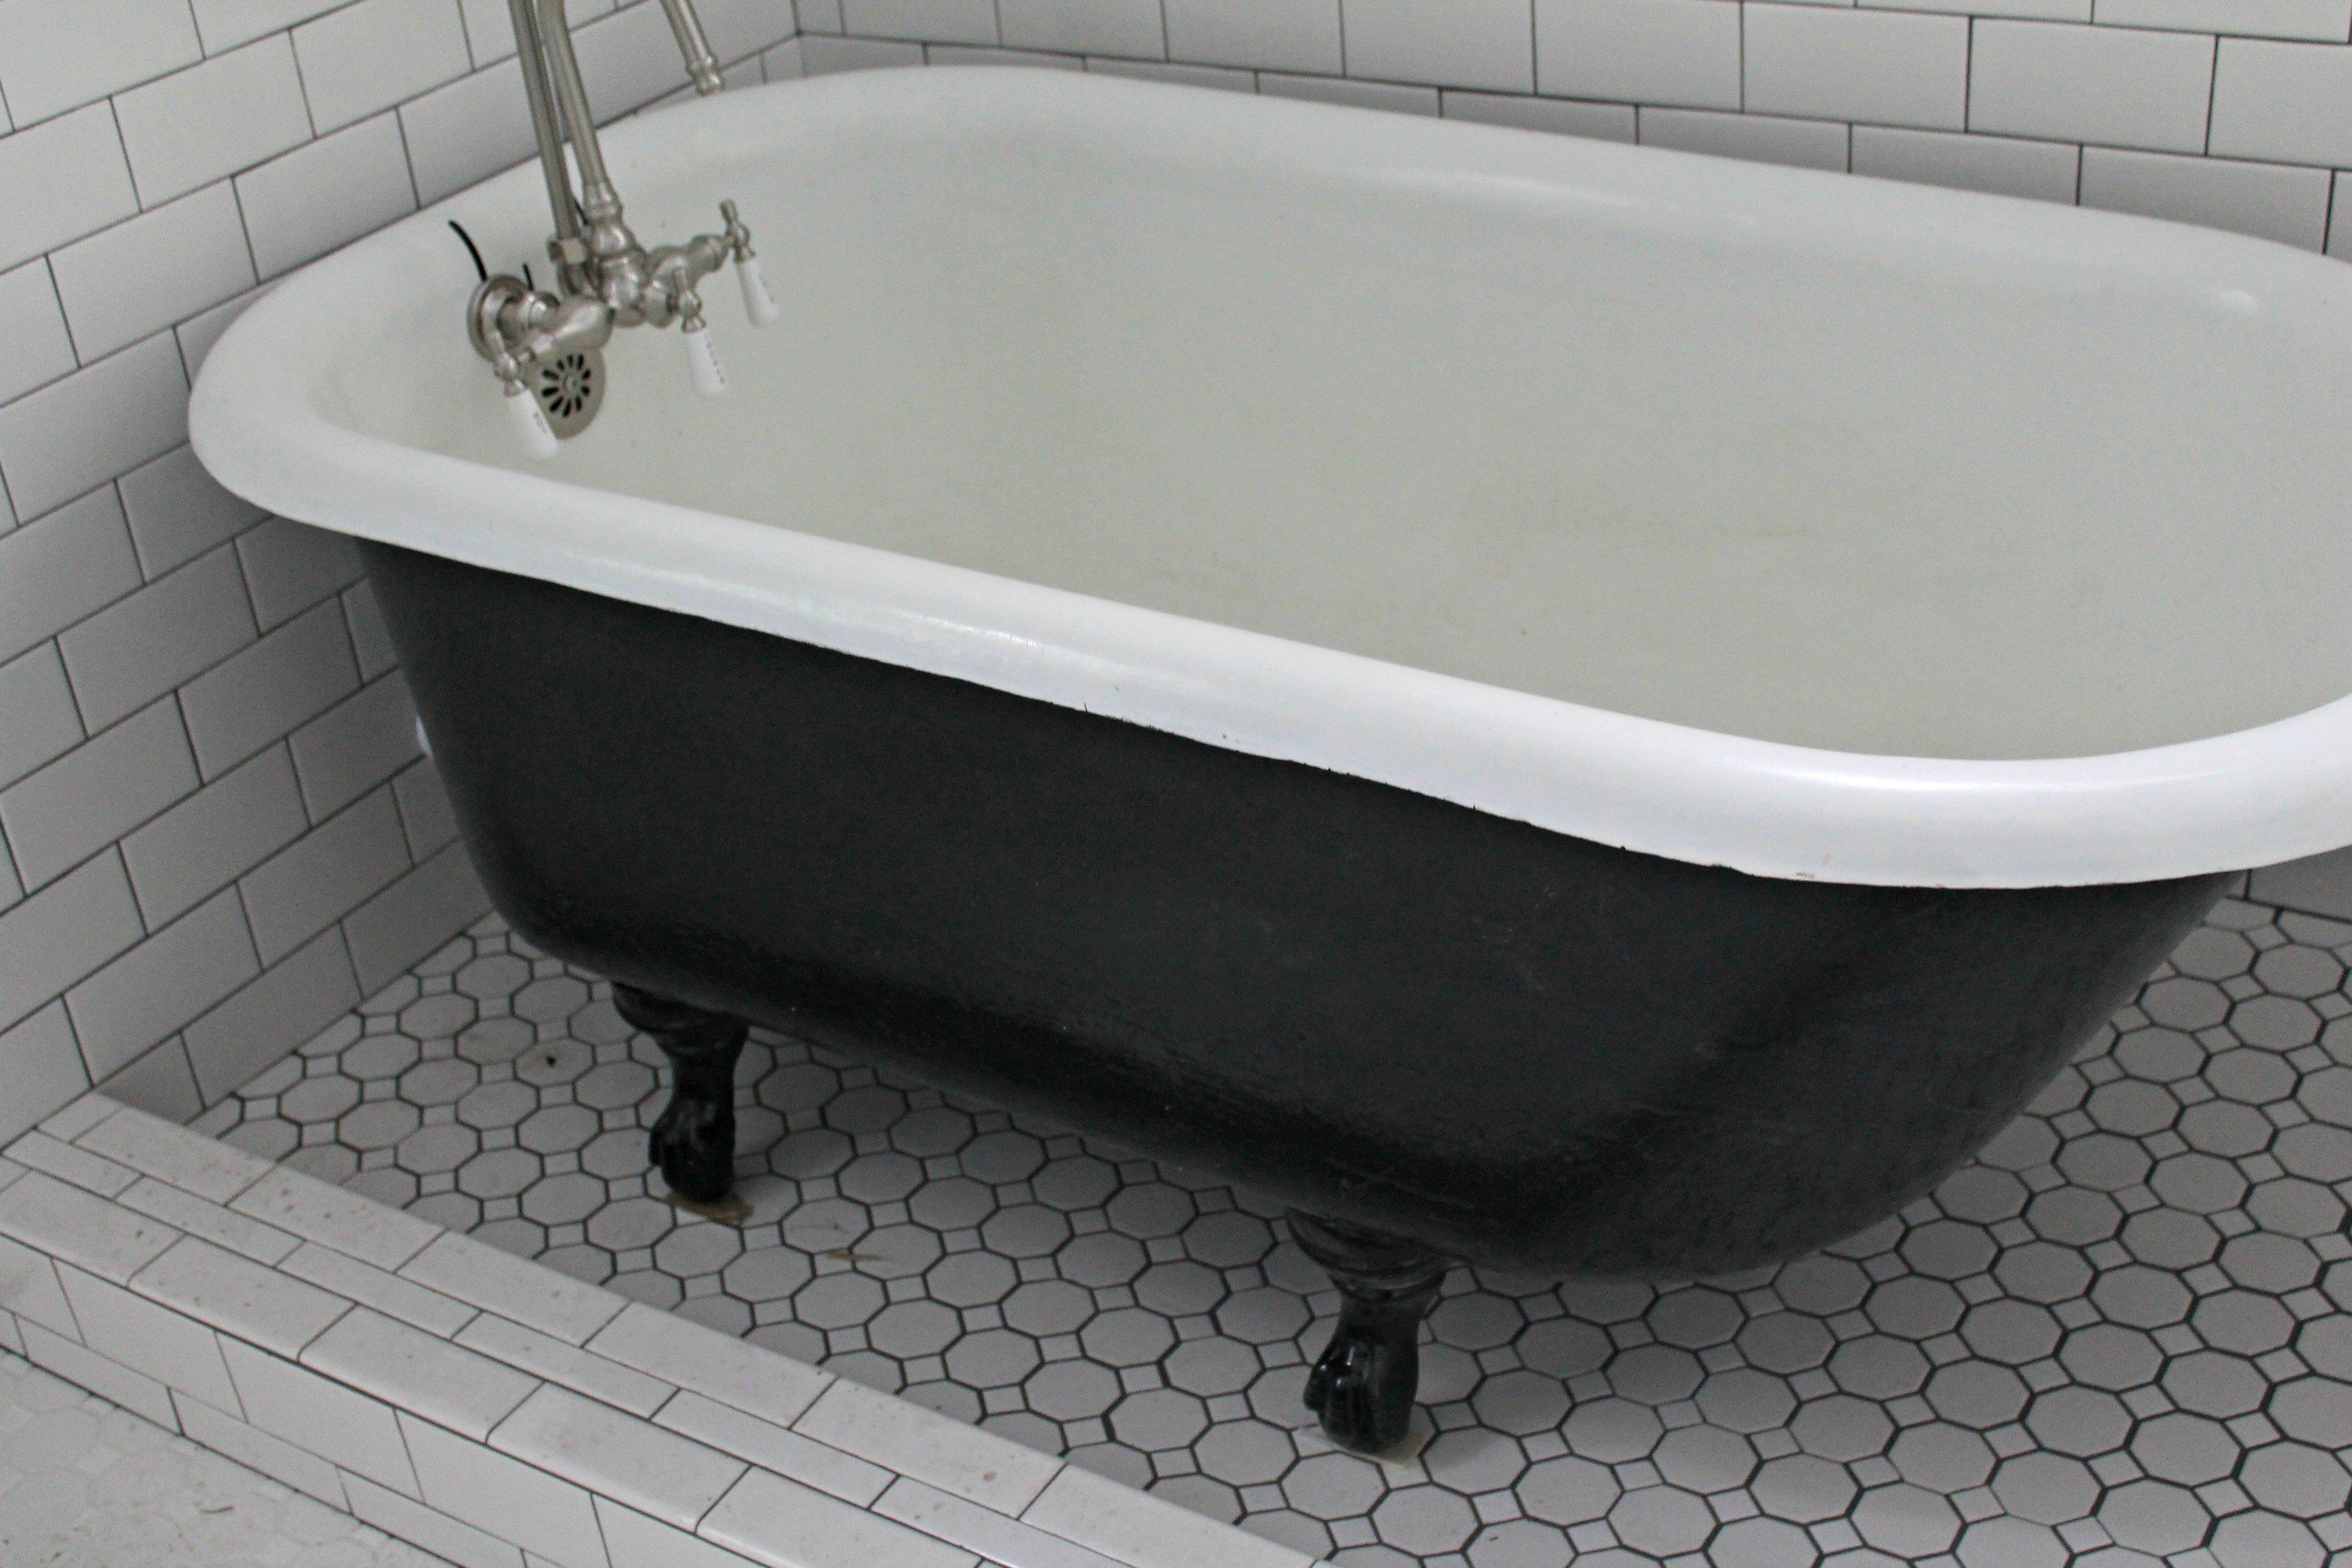 After 6 Jpg 3 318 2 212 Pixels Clawfoot Tub Tub Refinishing